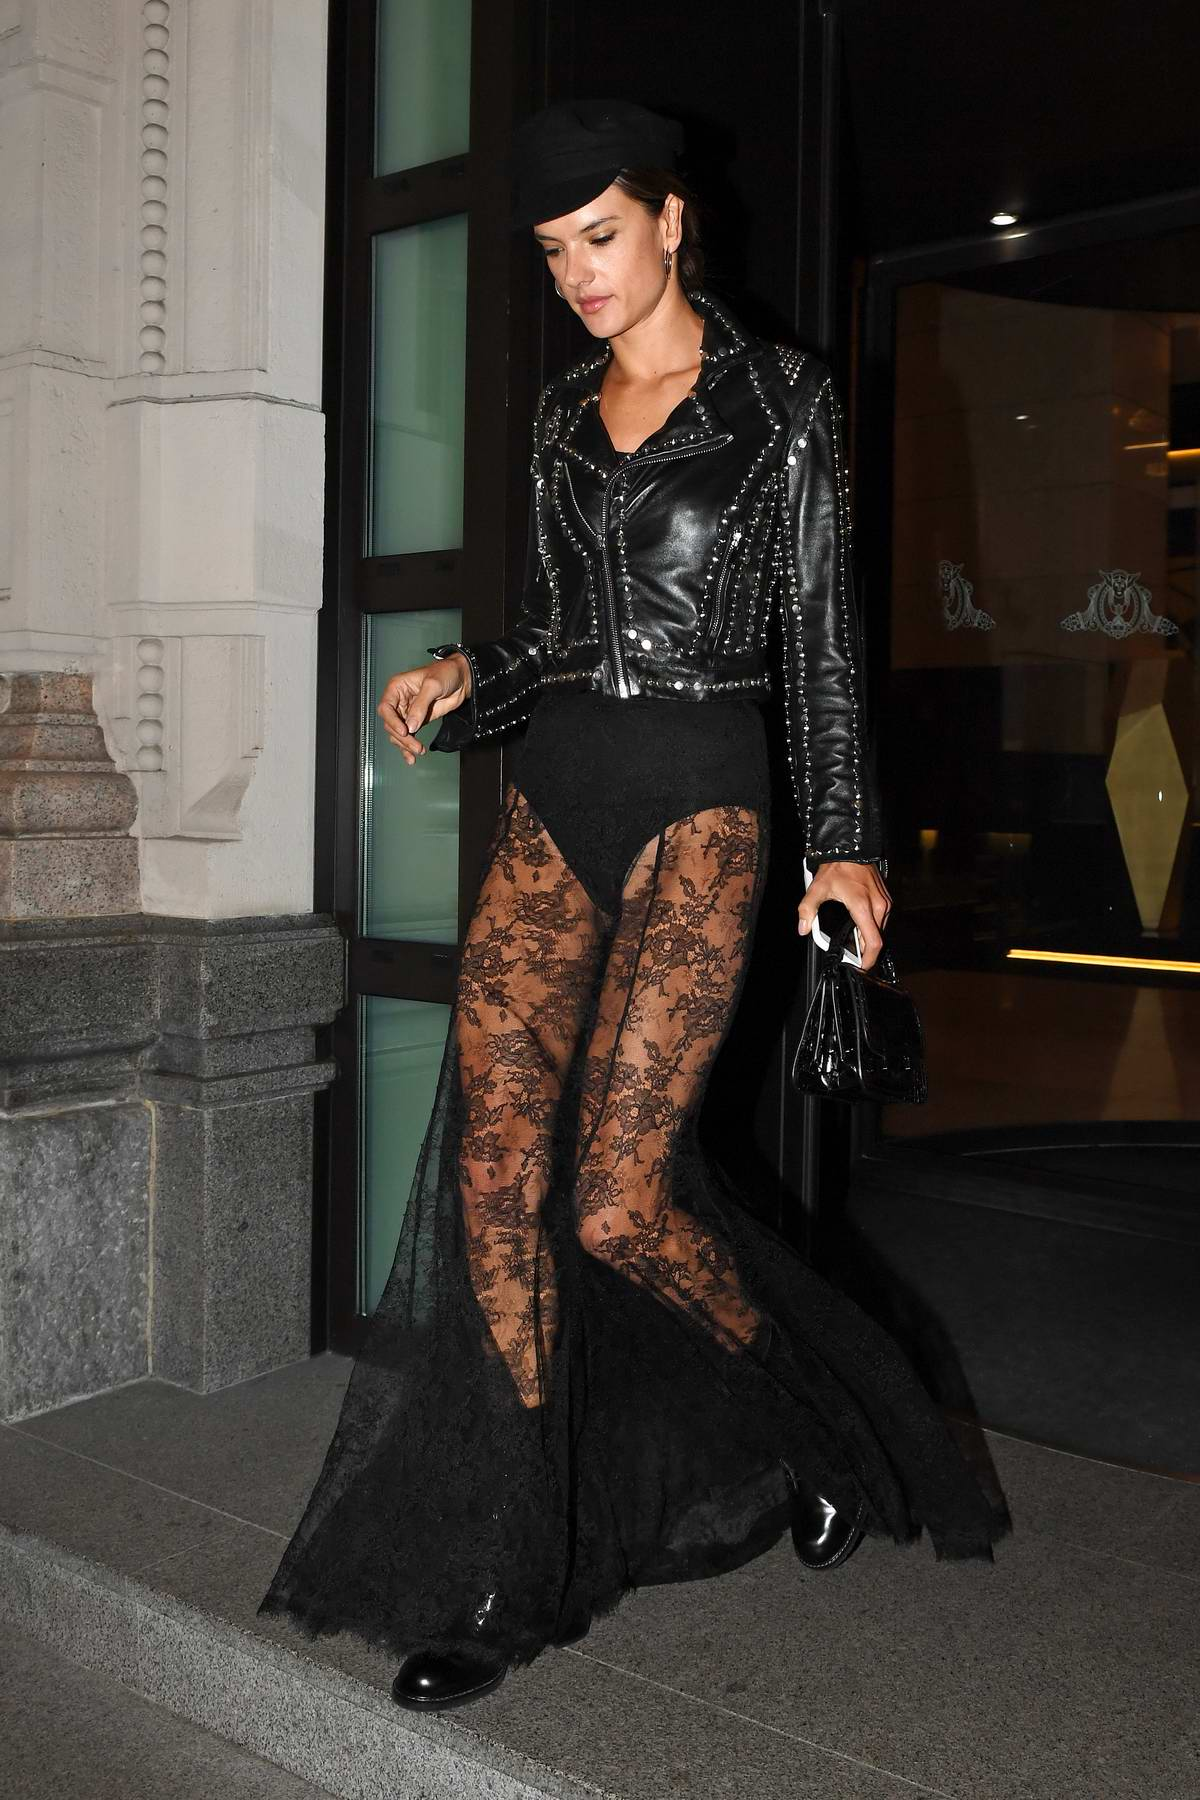 52147953_alessandra-ambrosio-in-all-black-out-and-about-in-milan-italy-190917_1.jpg